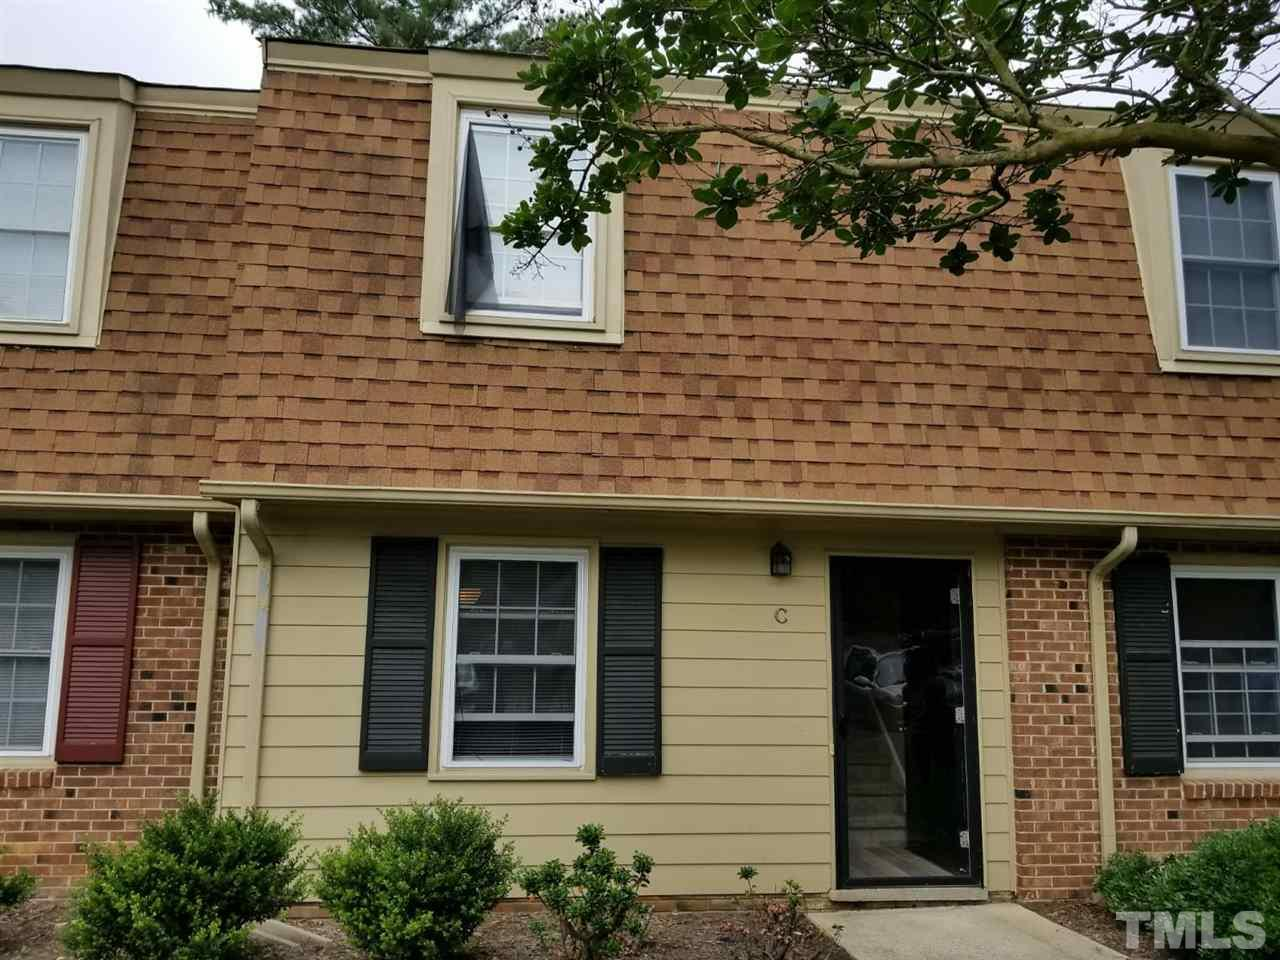 GreaterRaleighHomes.com - Real estate broker in the Raleigh, Cary ...